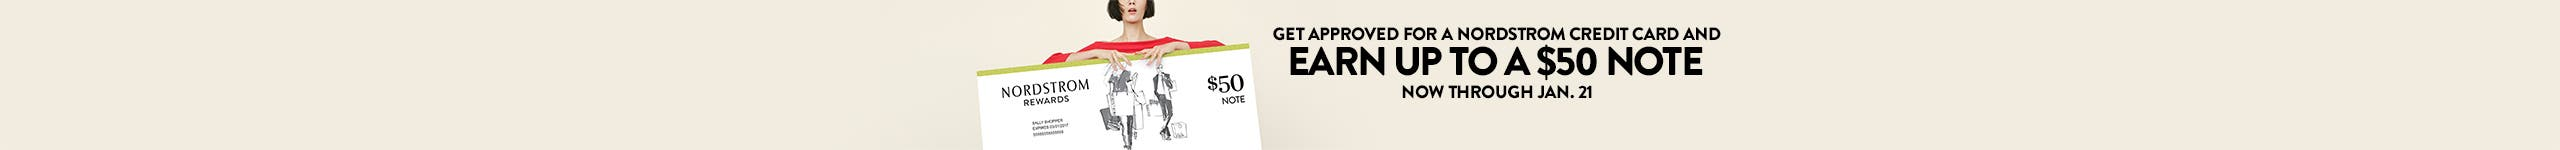 Get approved for a Nordstrom credit card and earn up to a $50 note now through Feb. 12.